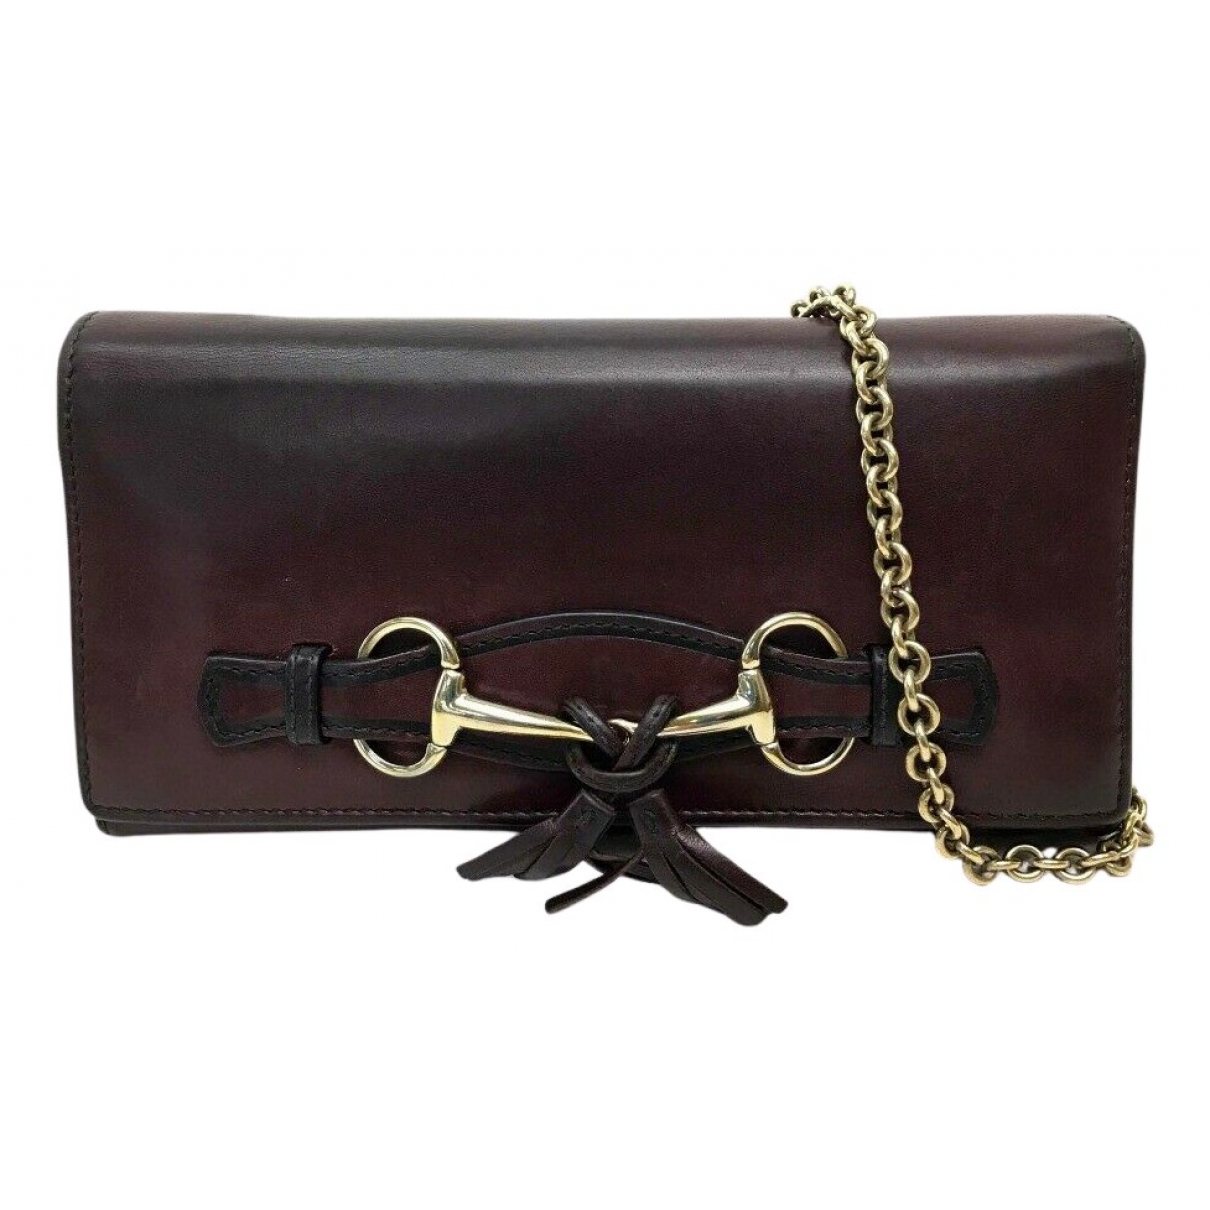 Gucci \N Clutch in  Bordeauxrot Leder